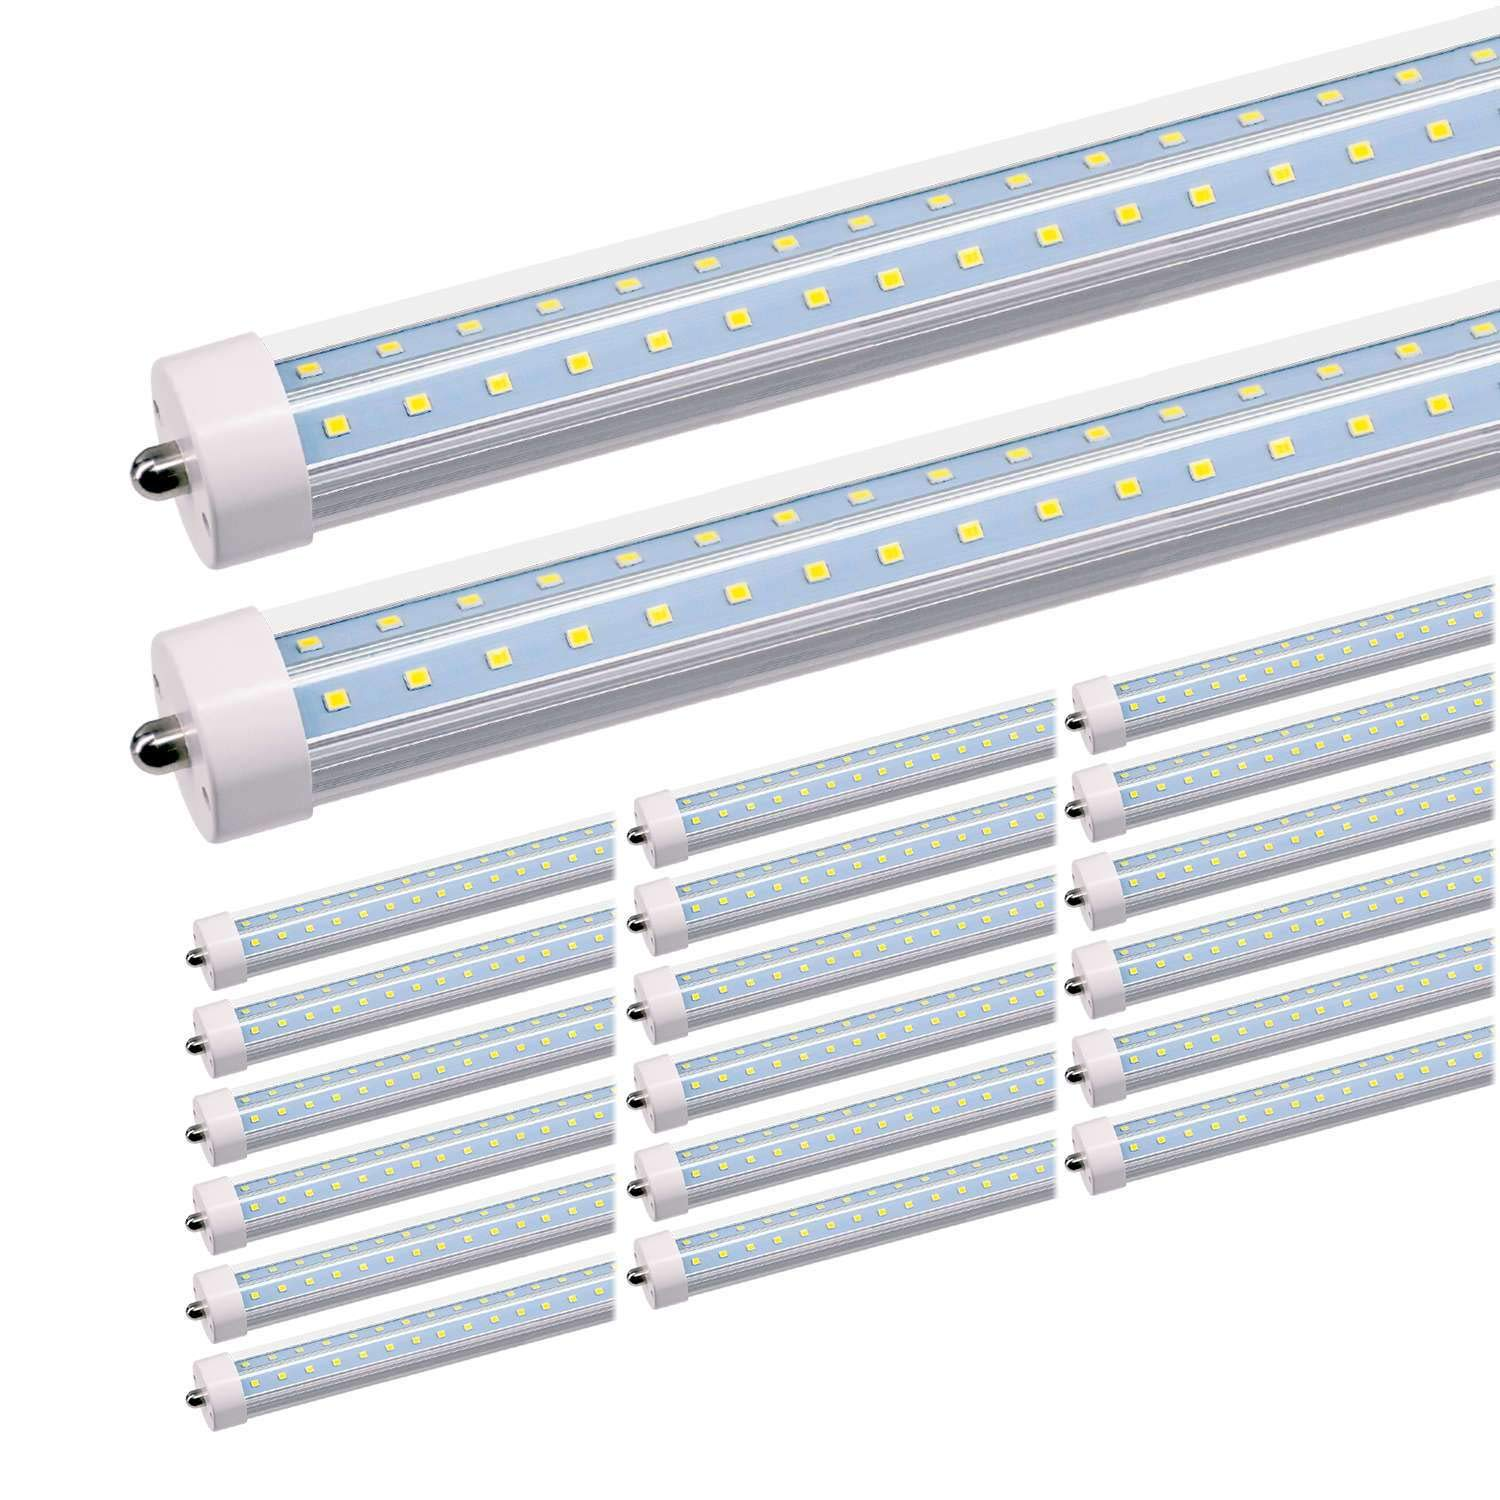 JESLED T8/T10/T12 8FT LED Tube Light, Single Pin FA8 Base, 50W 6000LM 5000K Daylight White, 270 Degree V Shaped LED Fluorescent Bulb (130W Replacement), Clear Cover, Dual-Ended Power (20-Pack)